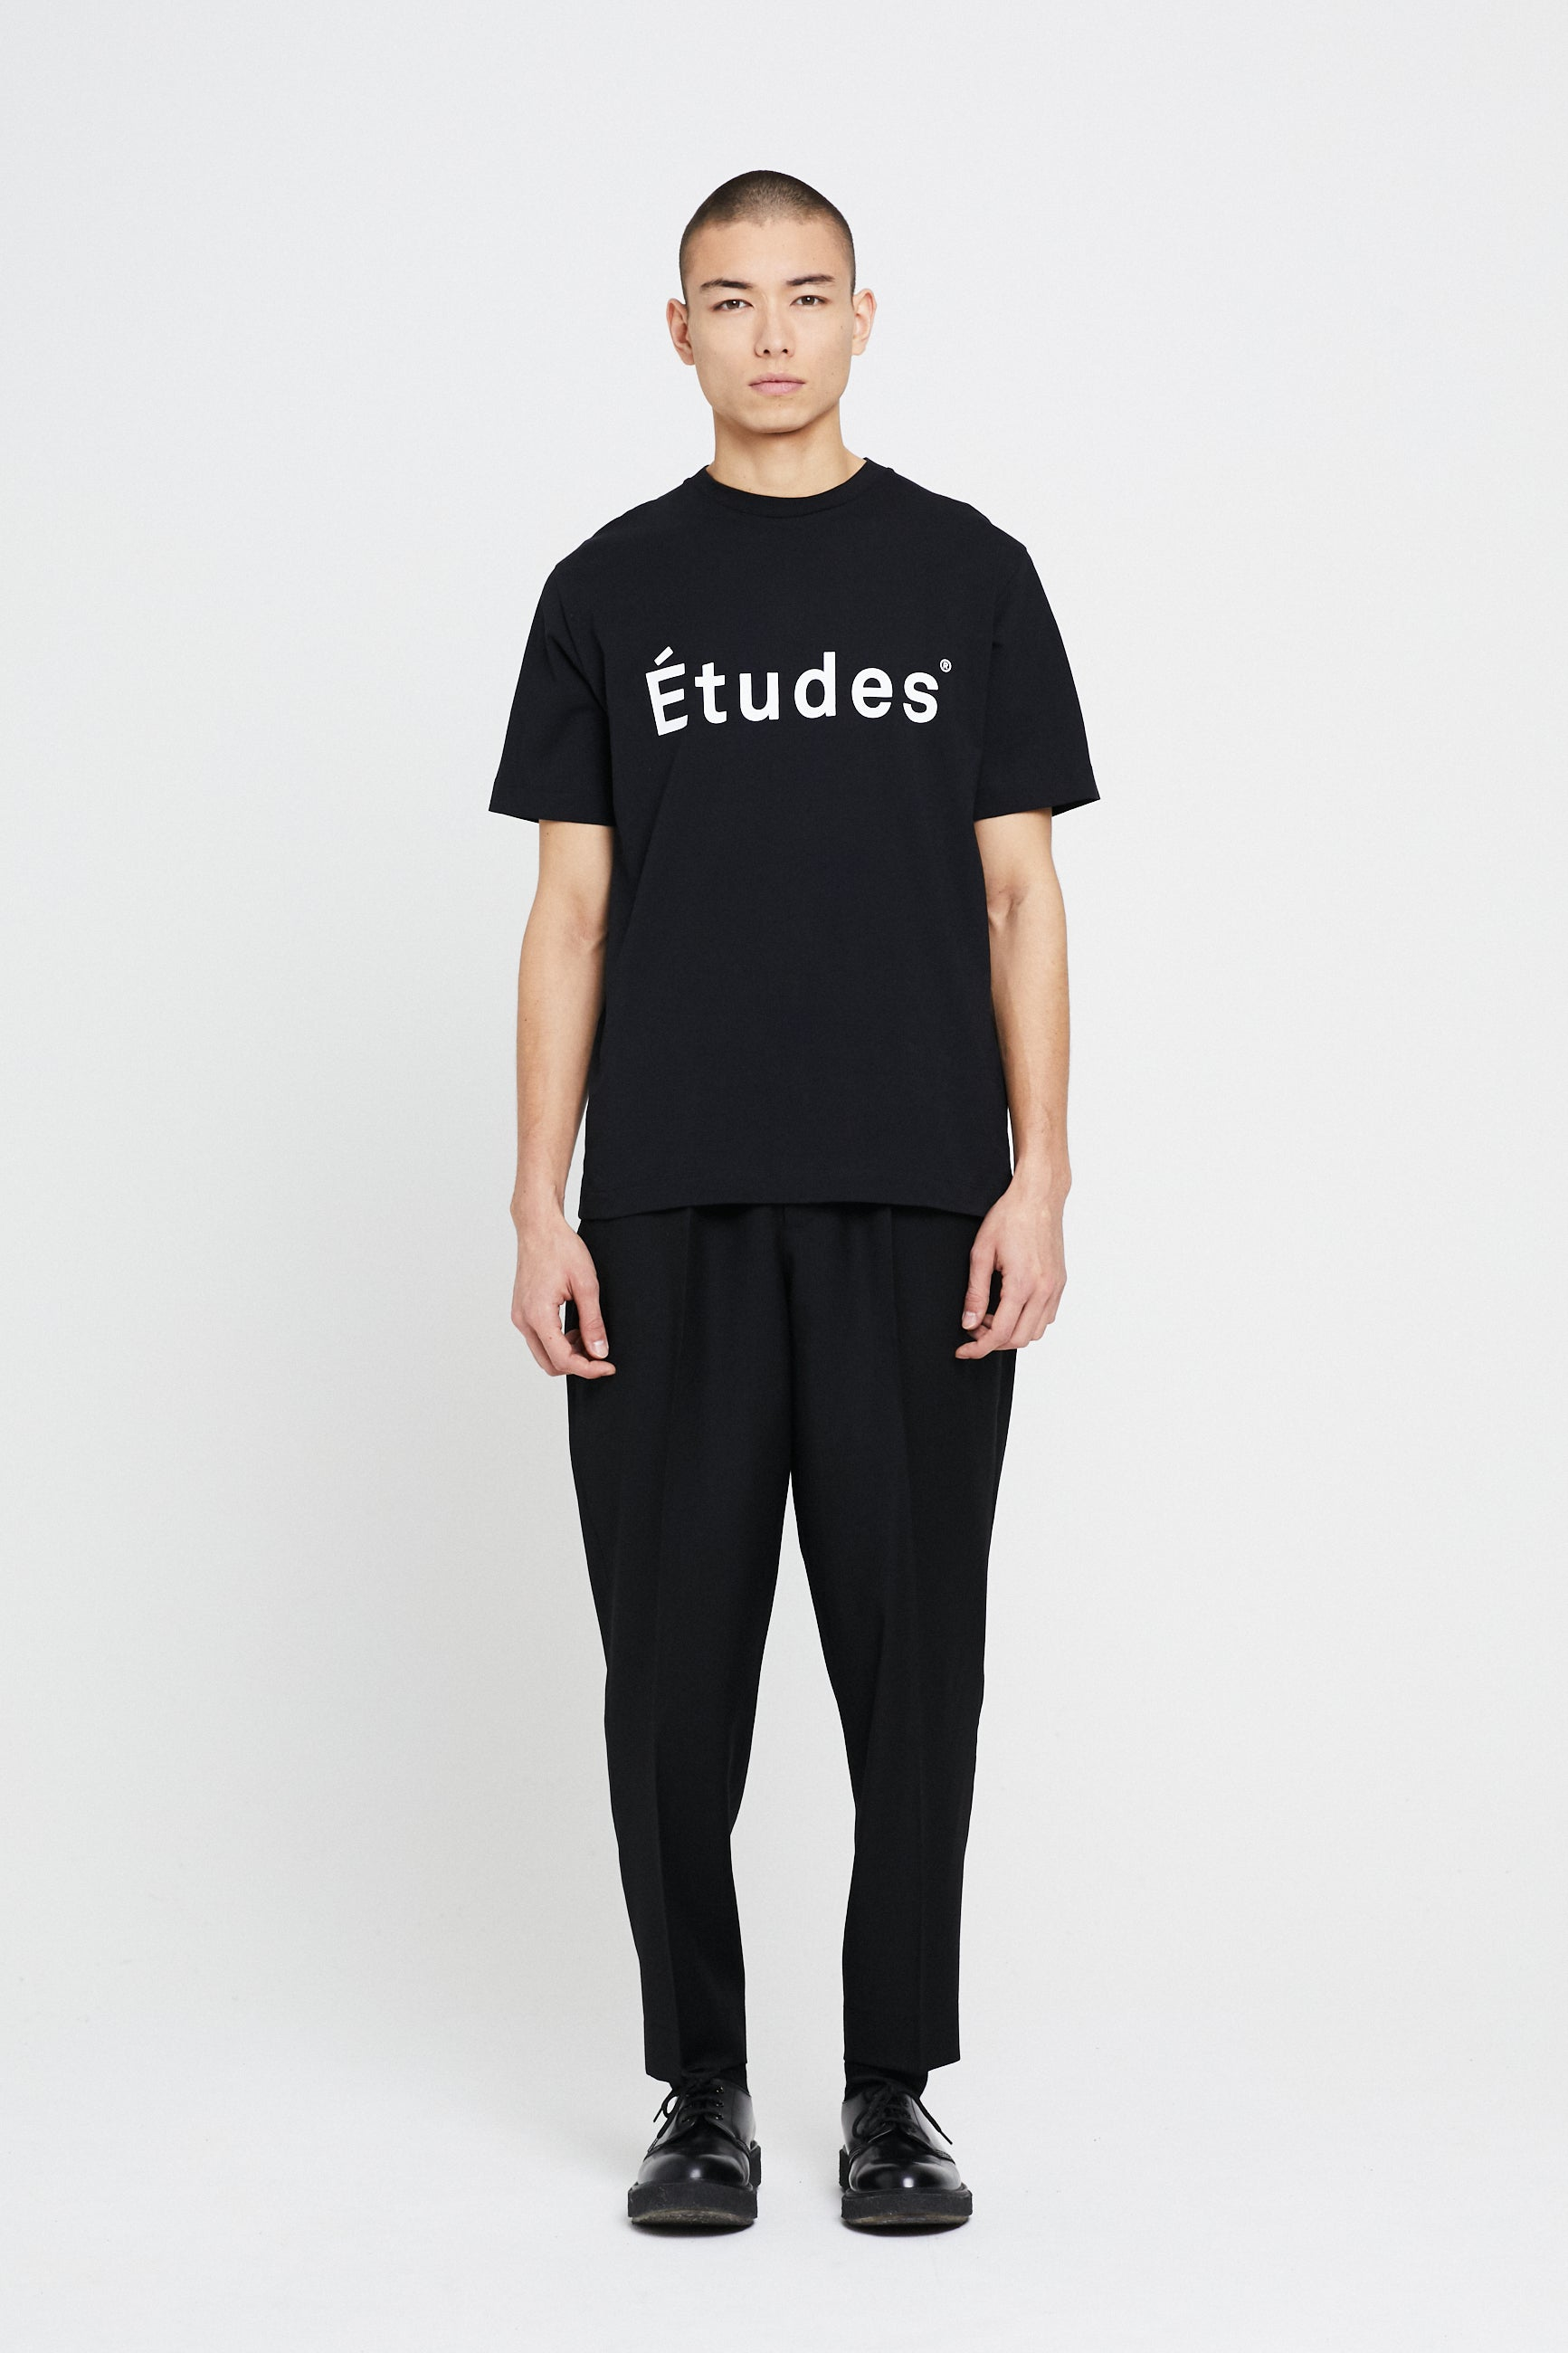 Études Wonder Études Black T-shirt 1